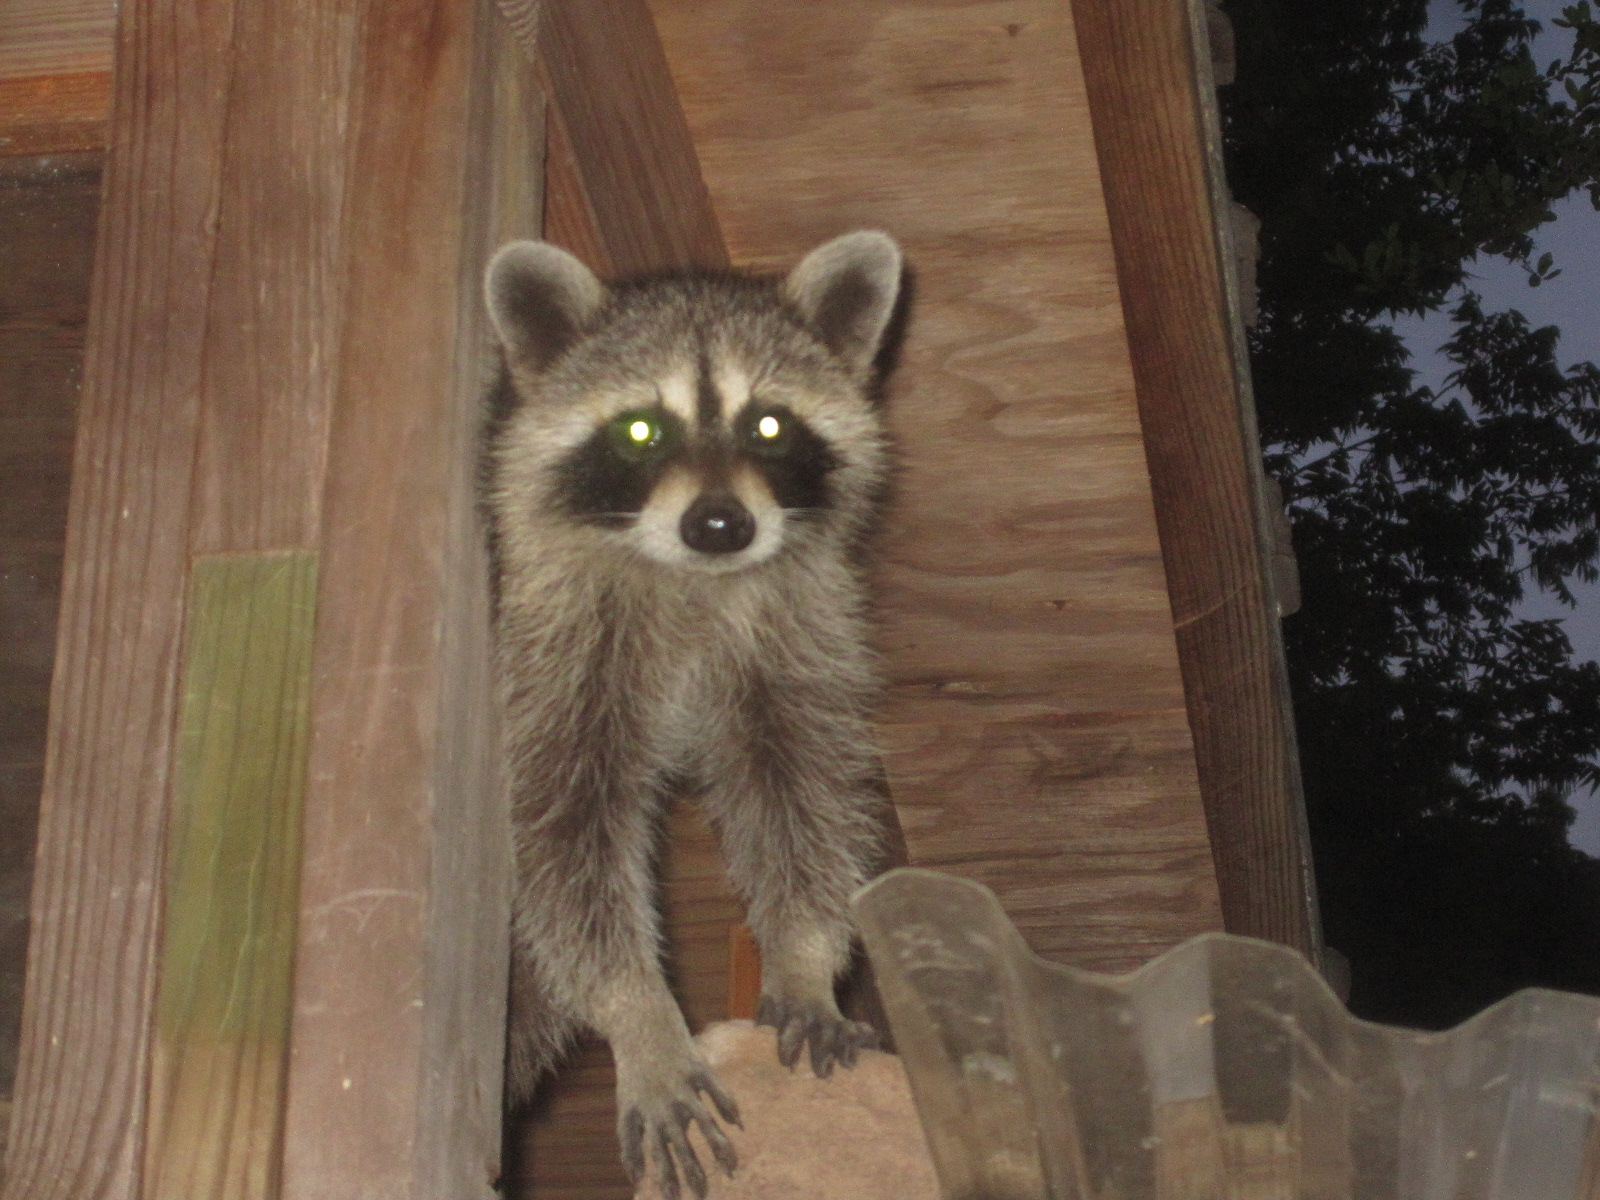 Tropical Texana: BABY RACCOONS\' FIRST NIGHT OUT